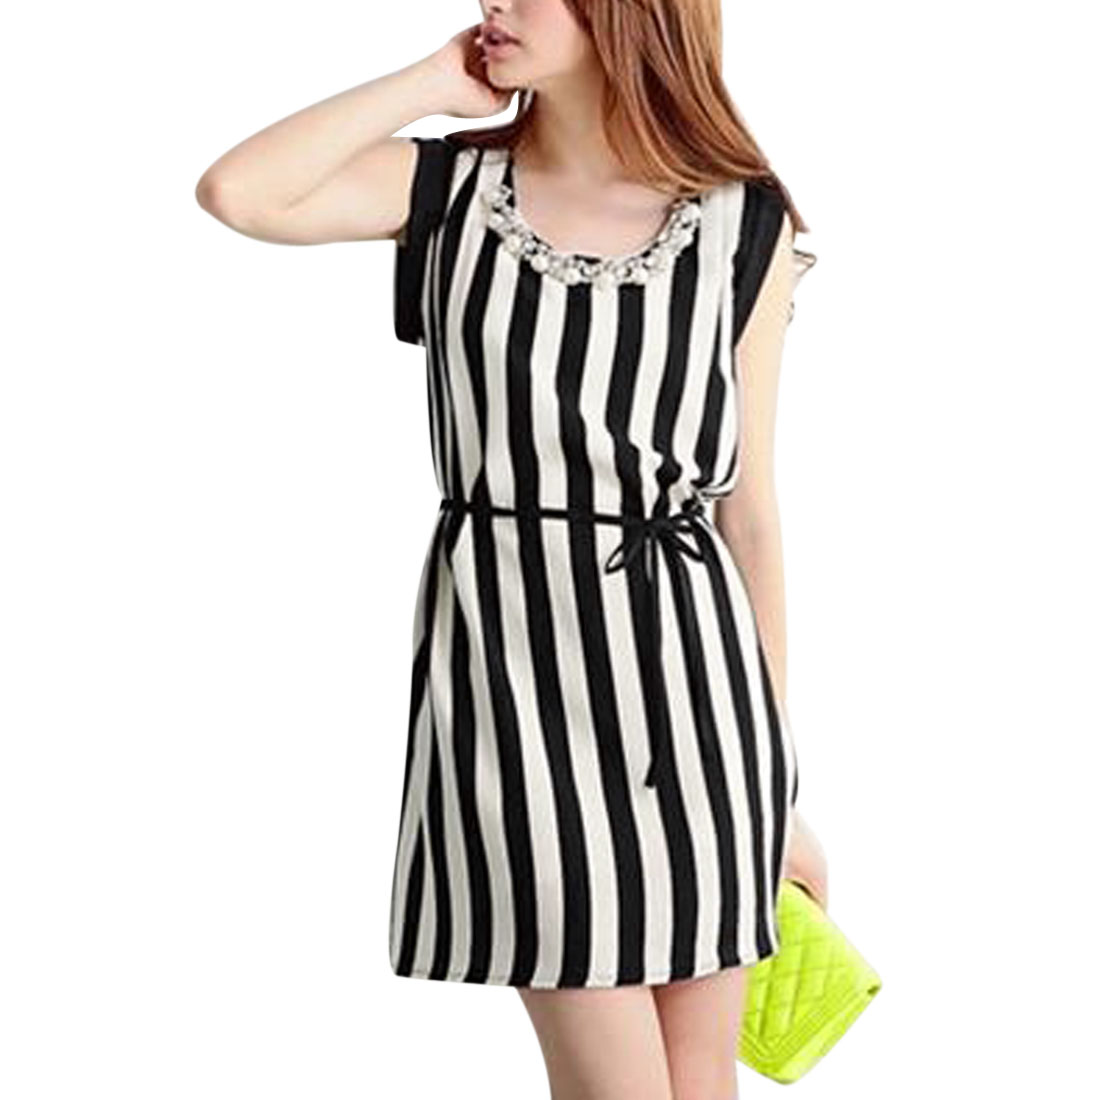 Women's Round Neck Removeable Pearl Decor Black White Stripes Chiffon Dress XS